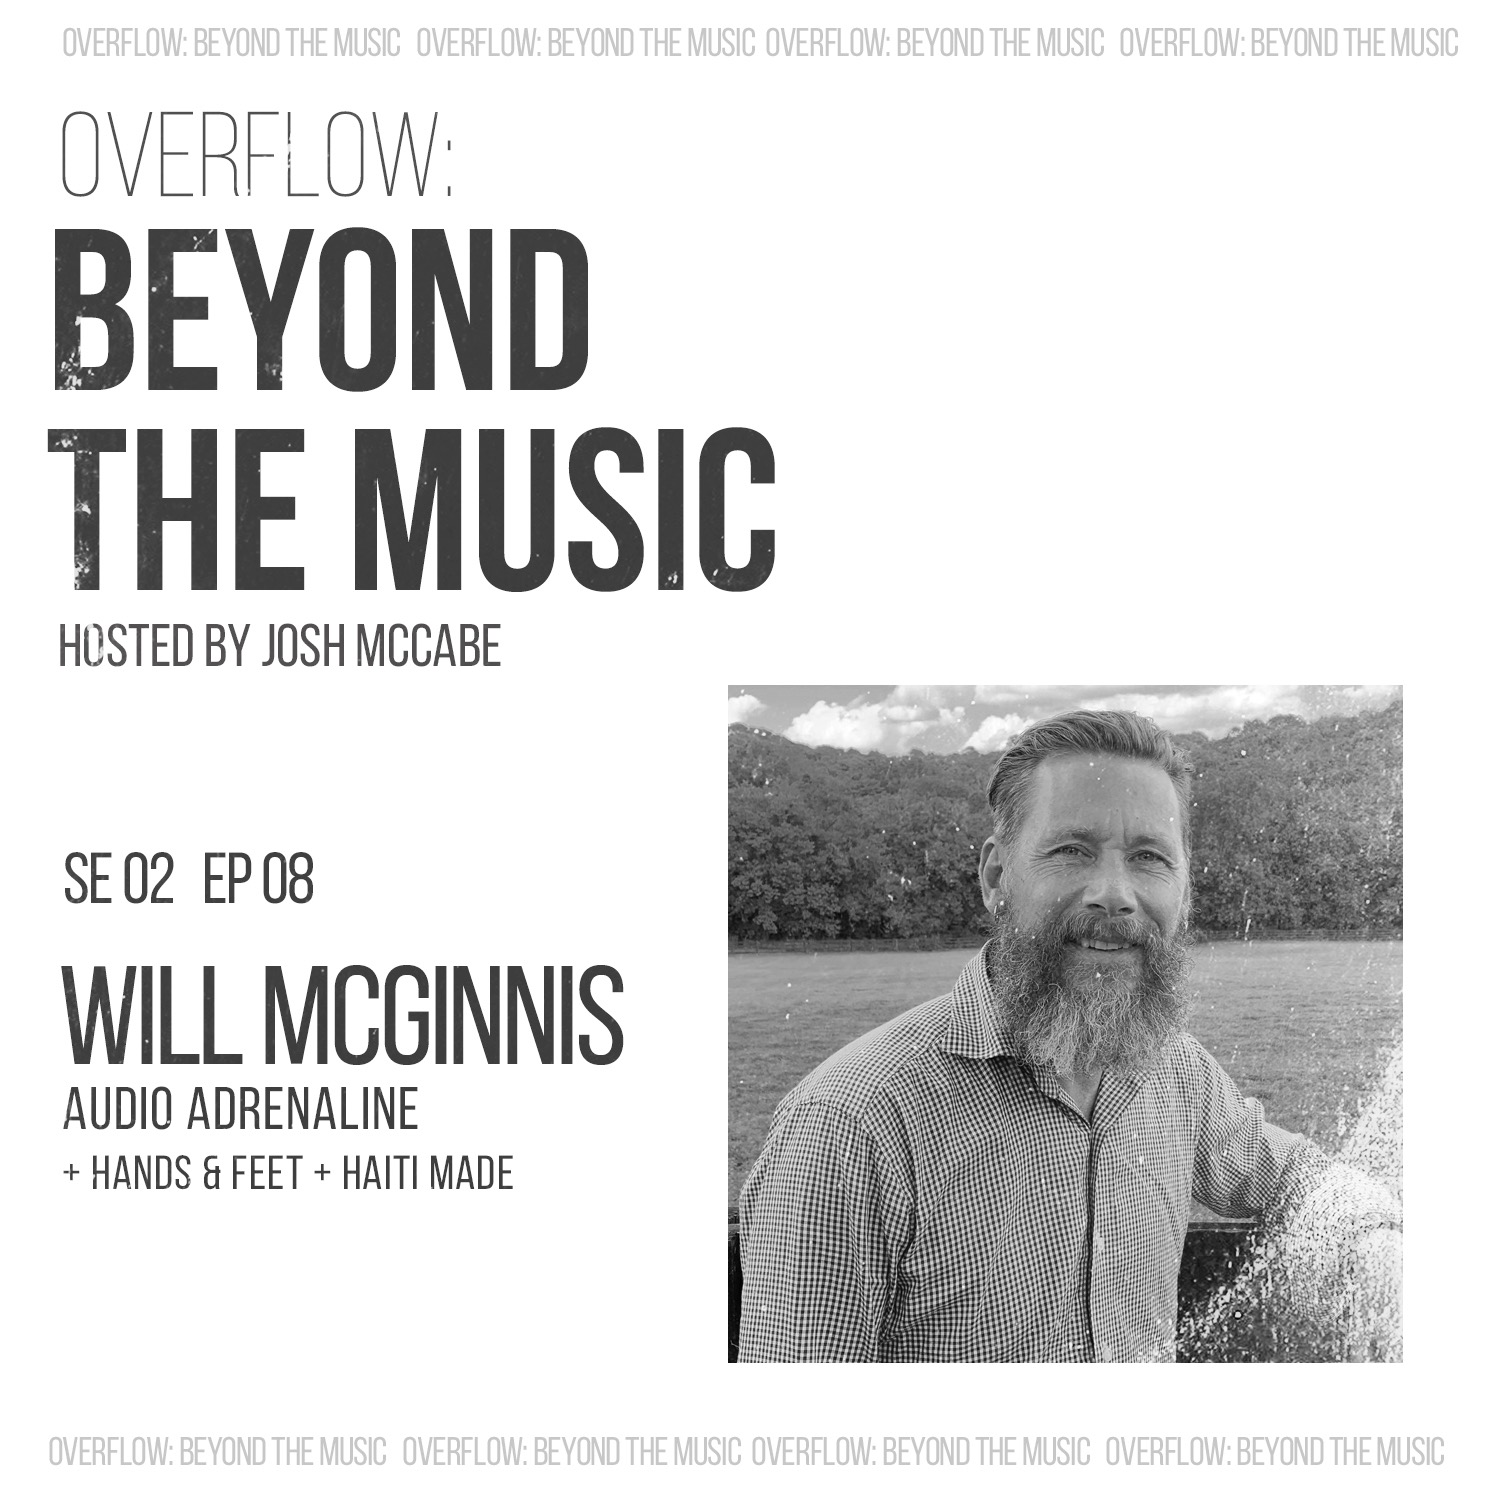 Haiti Made: Will McGinnis of Audio Adrenaline